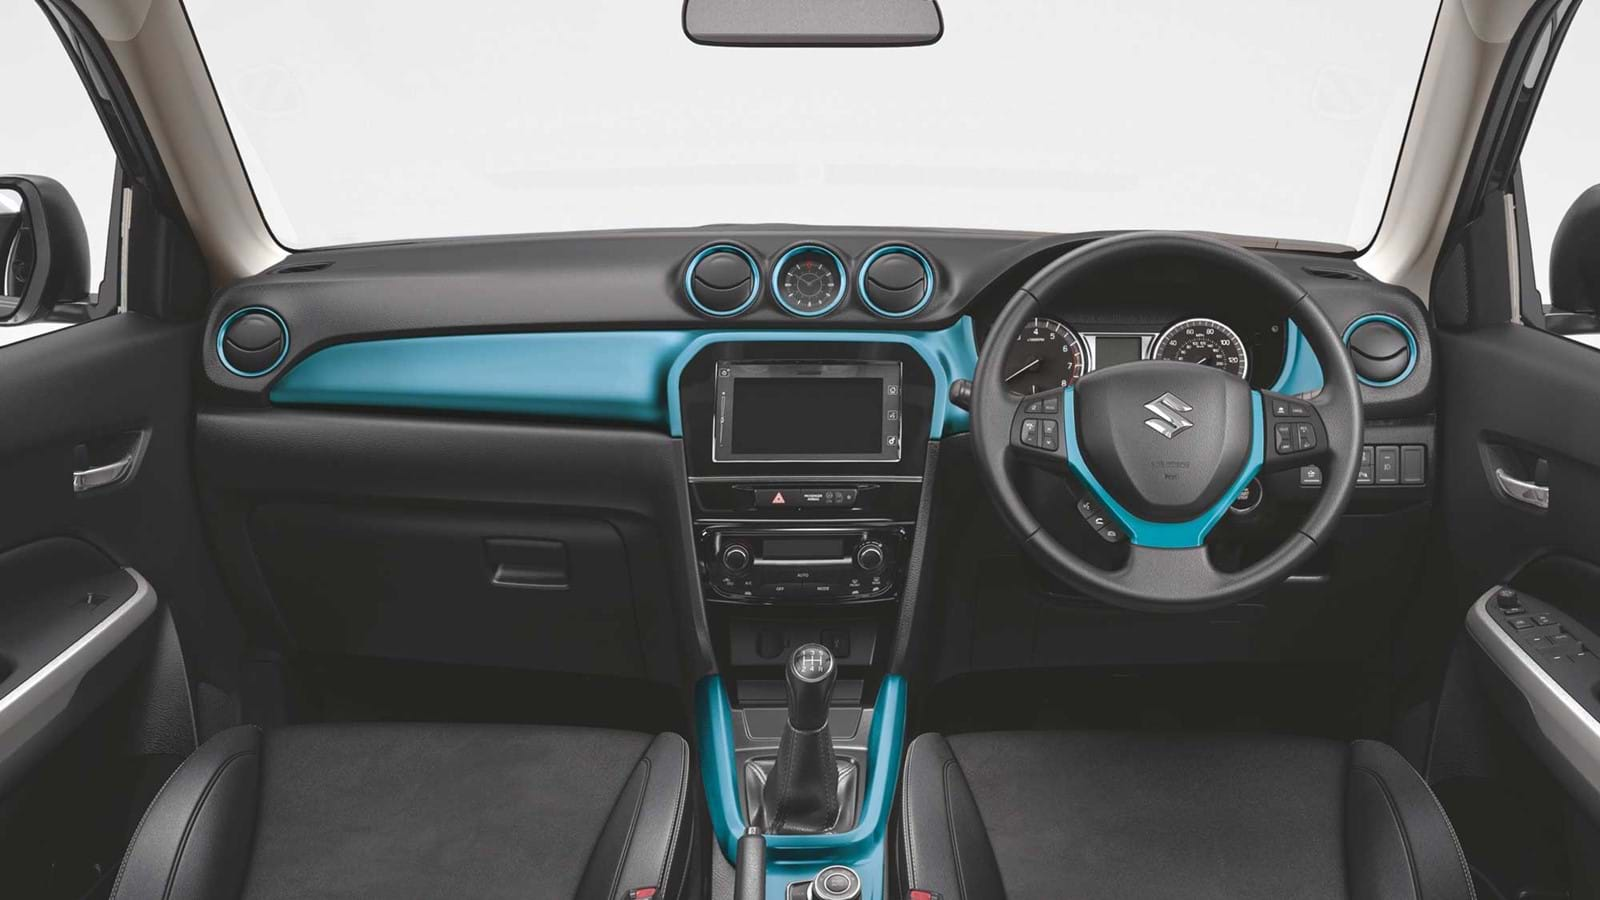 Dashboard and steering wheel with blue detailing